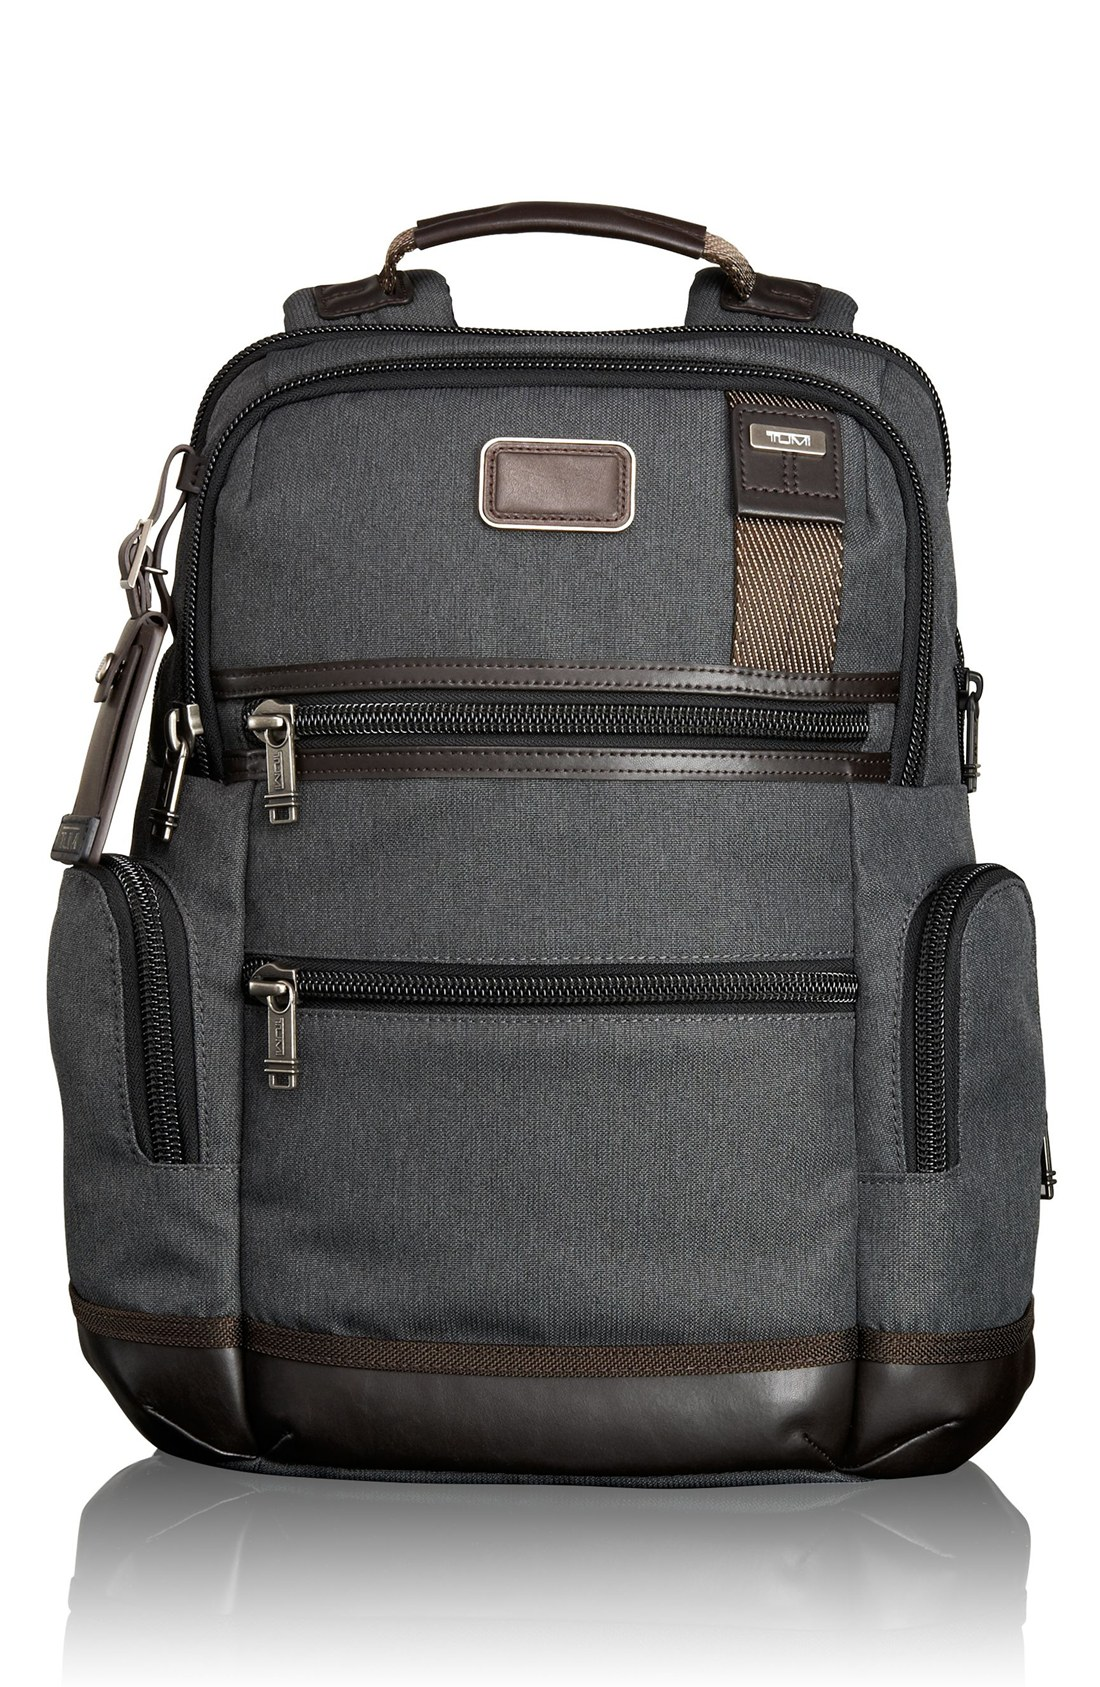 Tumi Knox Backpack Review | Tumi Alpha Bravo | Tumi Alpha Bravo Lejeune Backpack